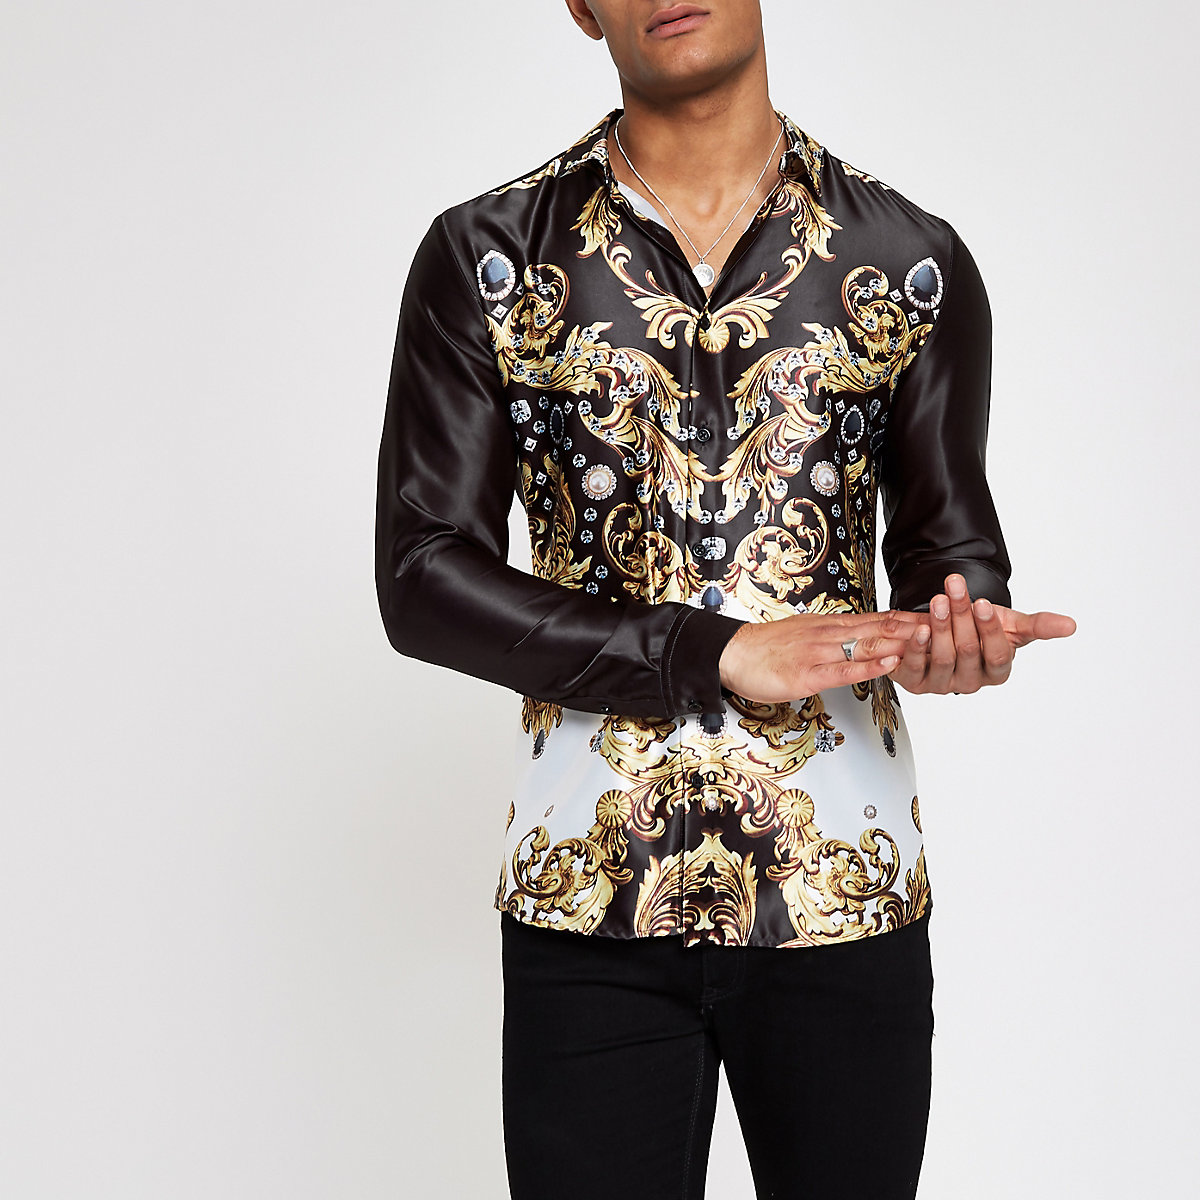 Jaded black baroque satin shirt